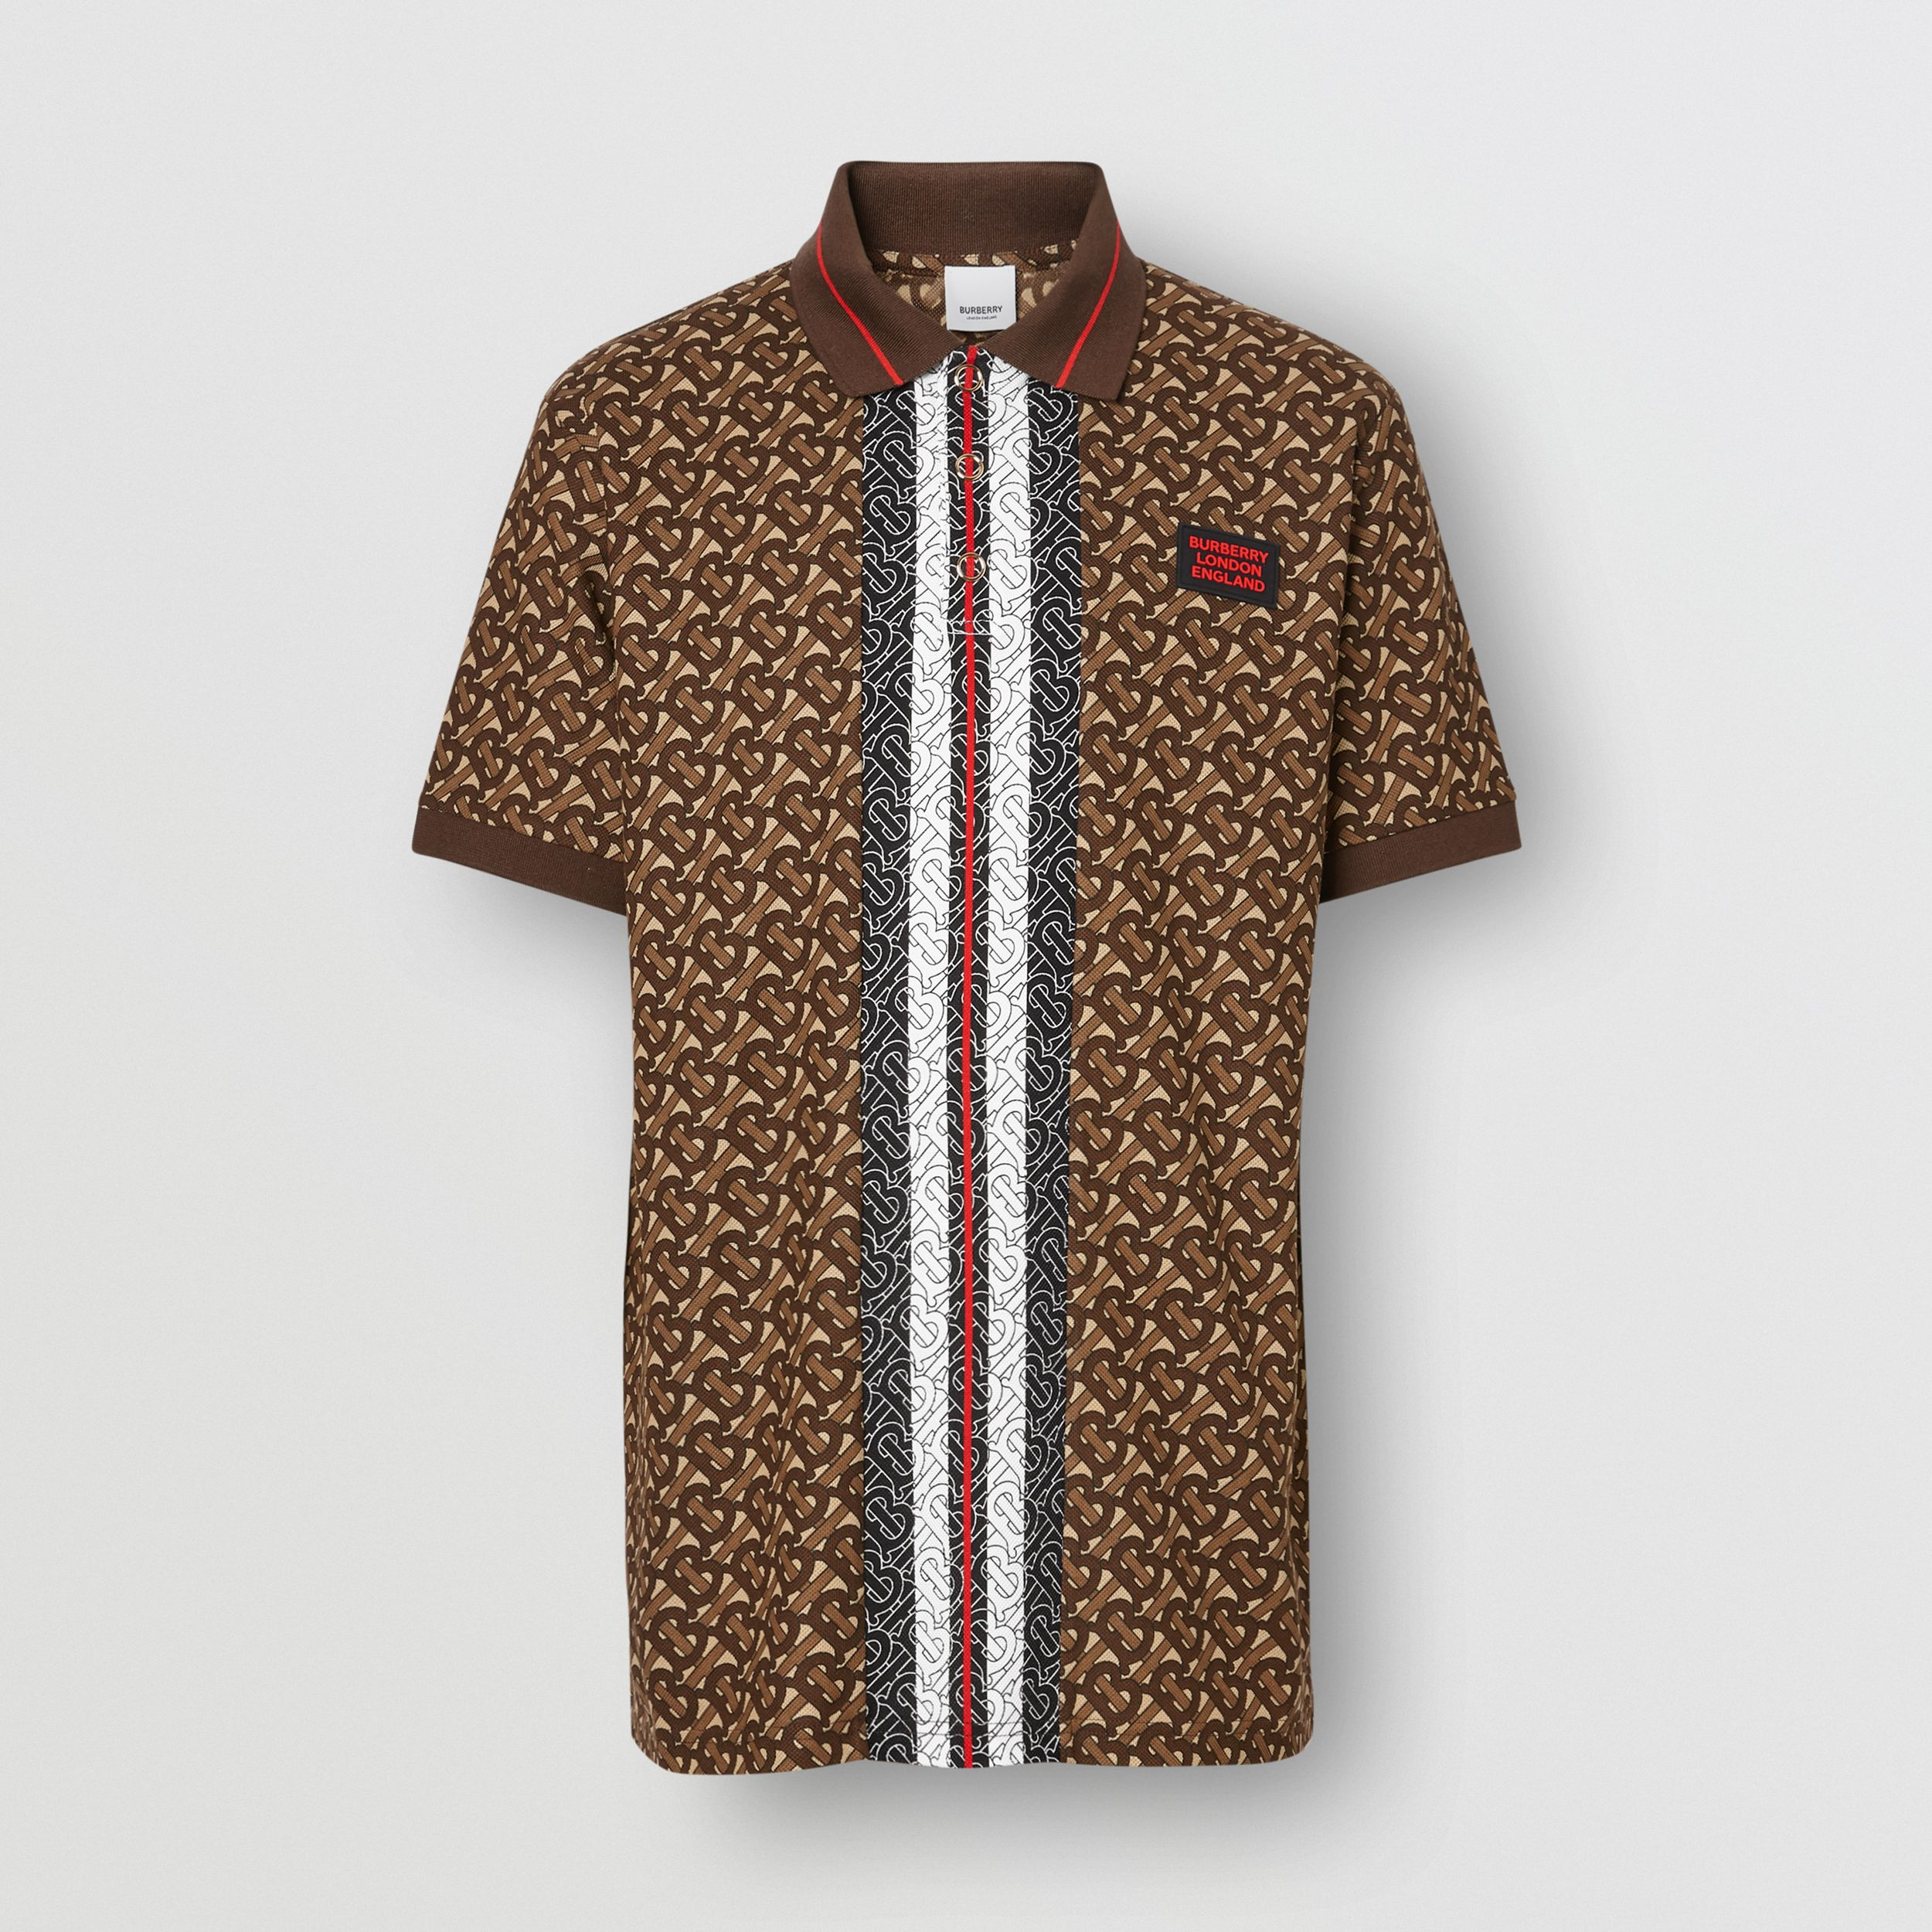 Monogram Stripe Print Cotton Piqué Polo Shirt in Bridle Brown - Men | Burberry Hong Kong S.A.R. - 4